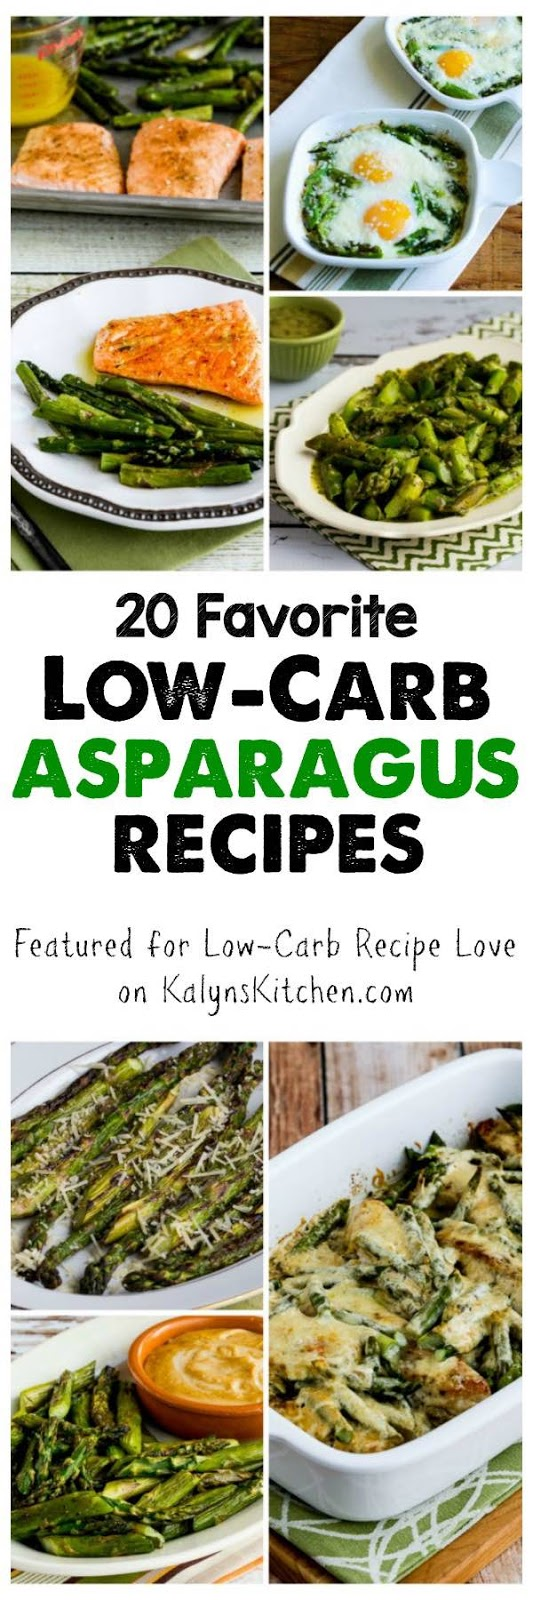 What's Your Favorite Way To Cook Asparagus? Tell Us About It In The Ments Please! Twenty Favorite Lowcarb